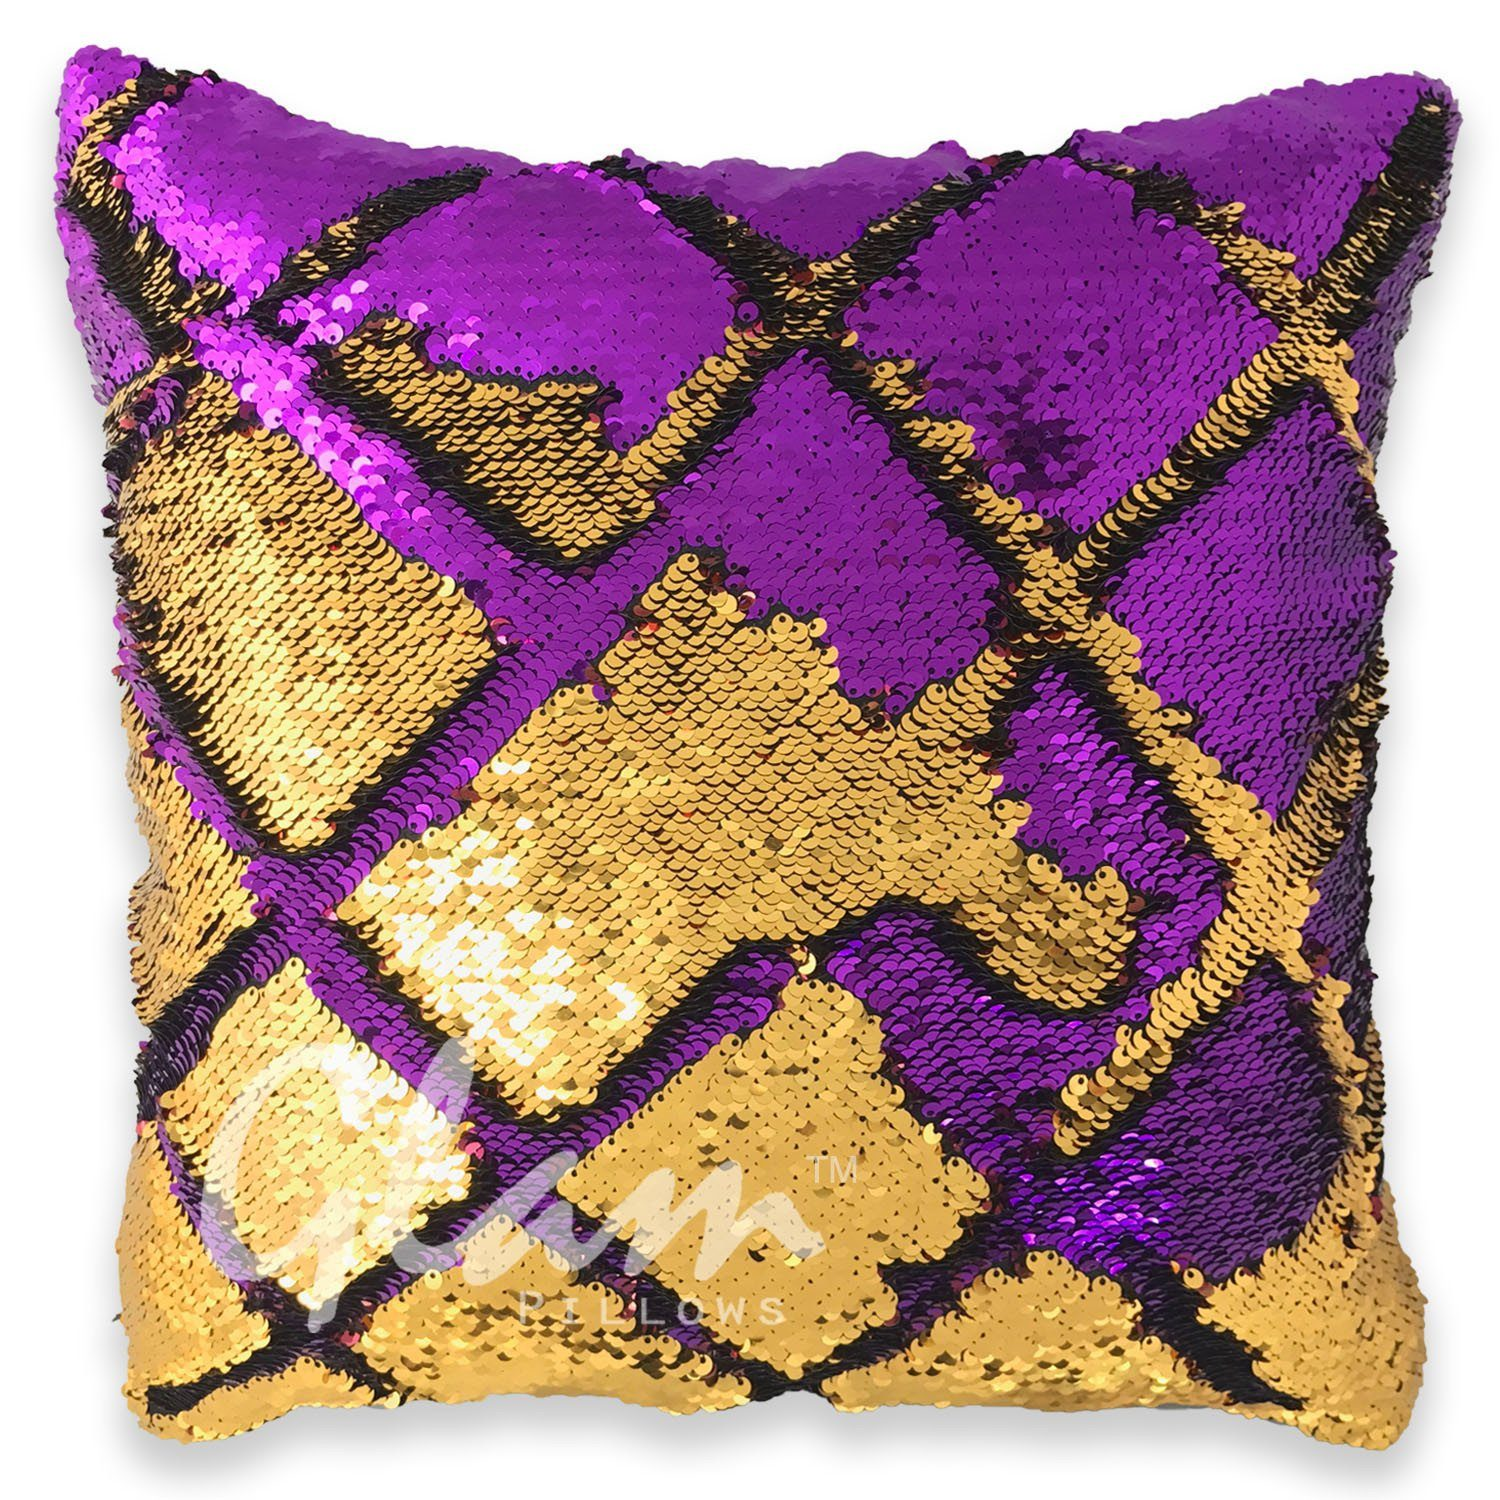 Purple & Gold Reversible Sequin Glam Pillow - Glam Pillows - photo#38